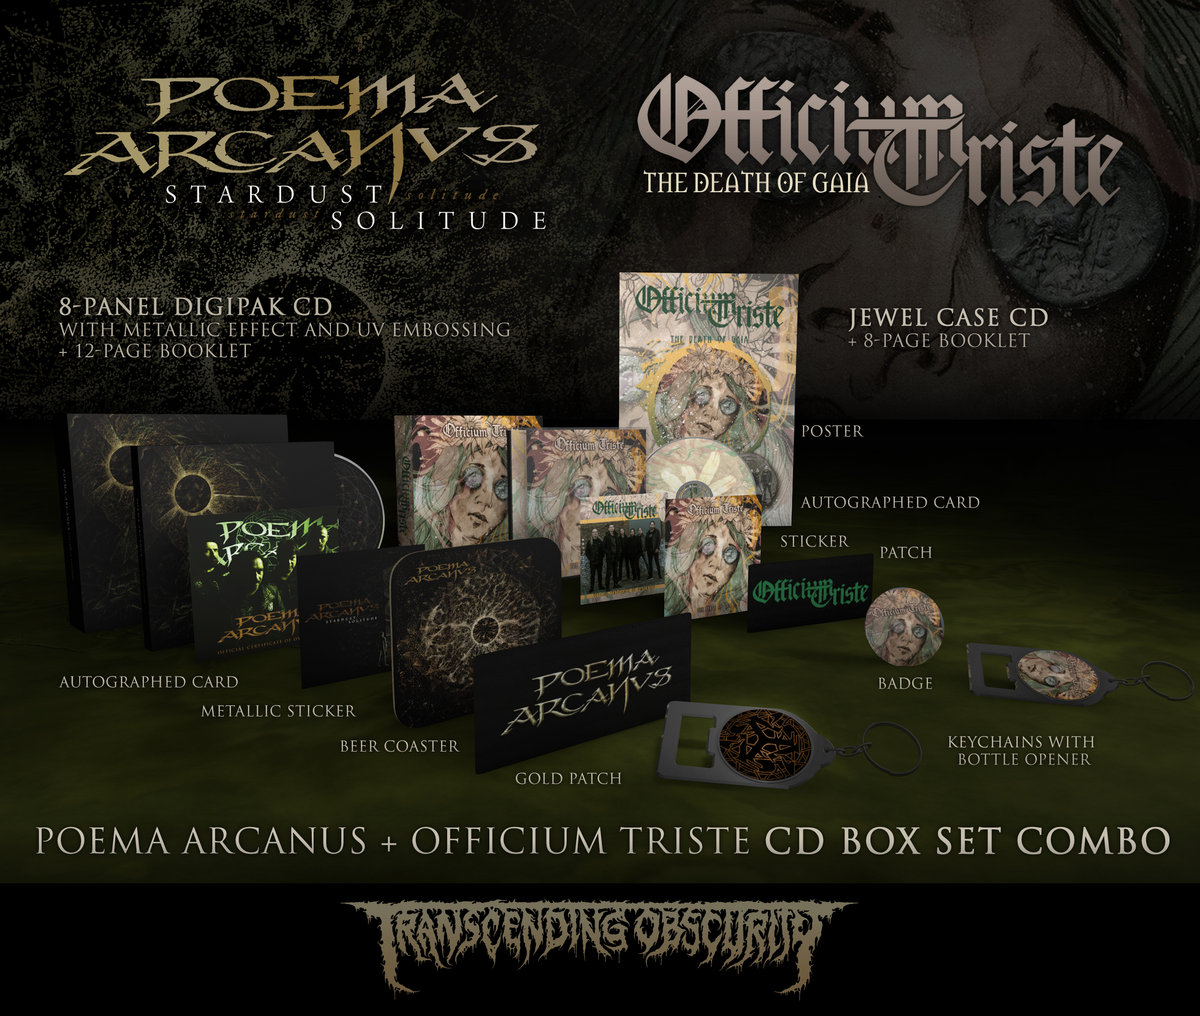 POEMA ARCANVS + OFFICIUM TRISTE Autographed Box Set Combo